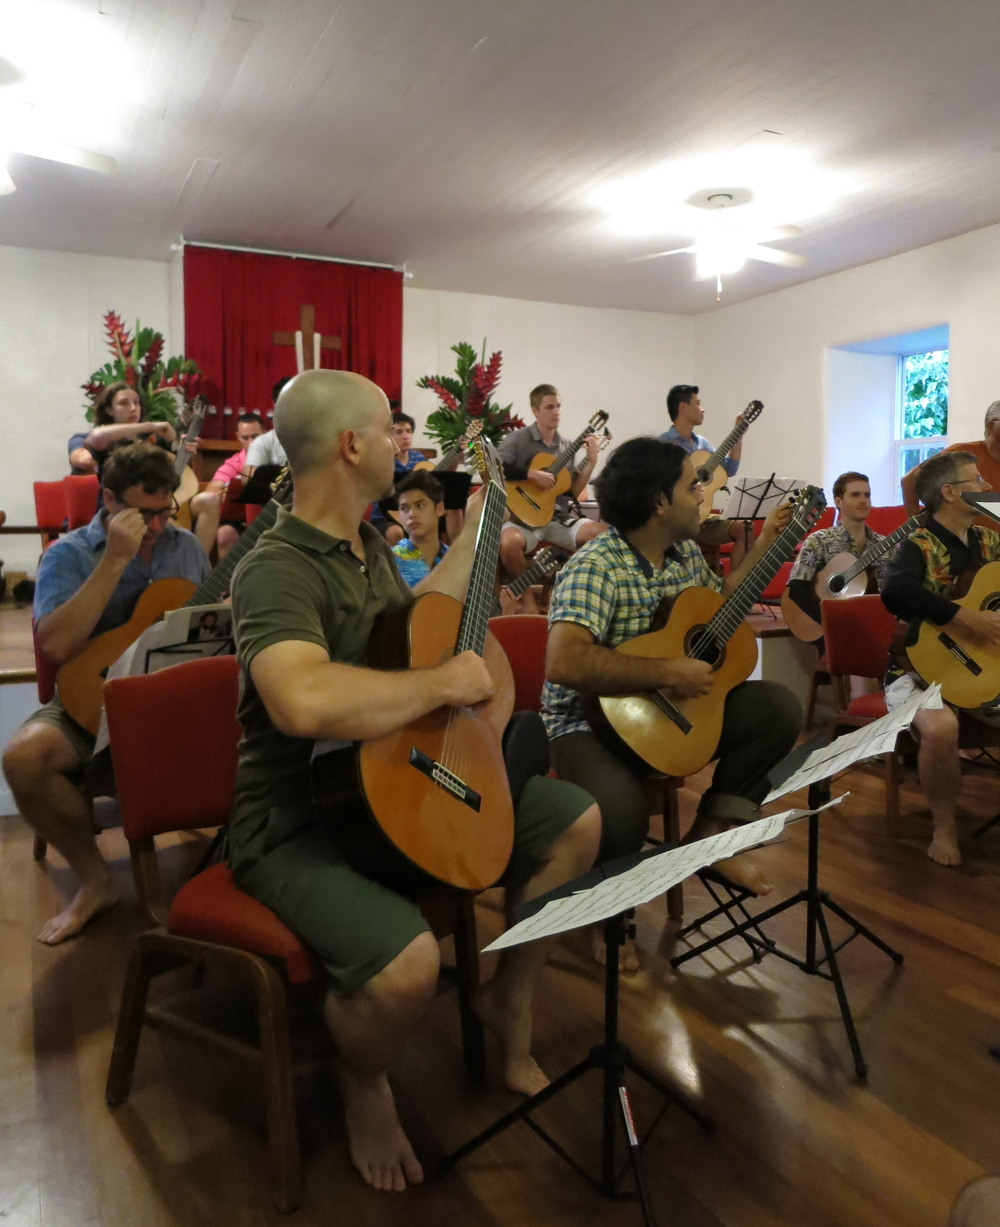 Guitar orchestra at Keawala'i Church (2014)